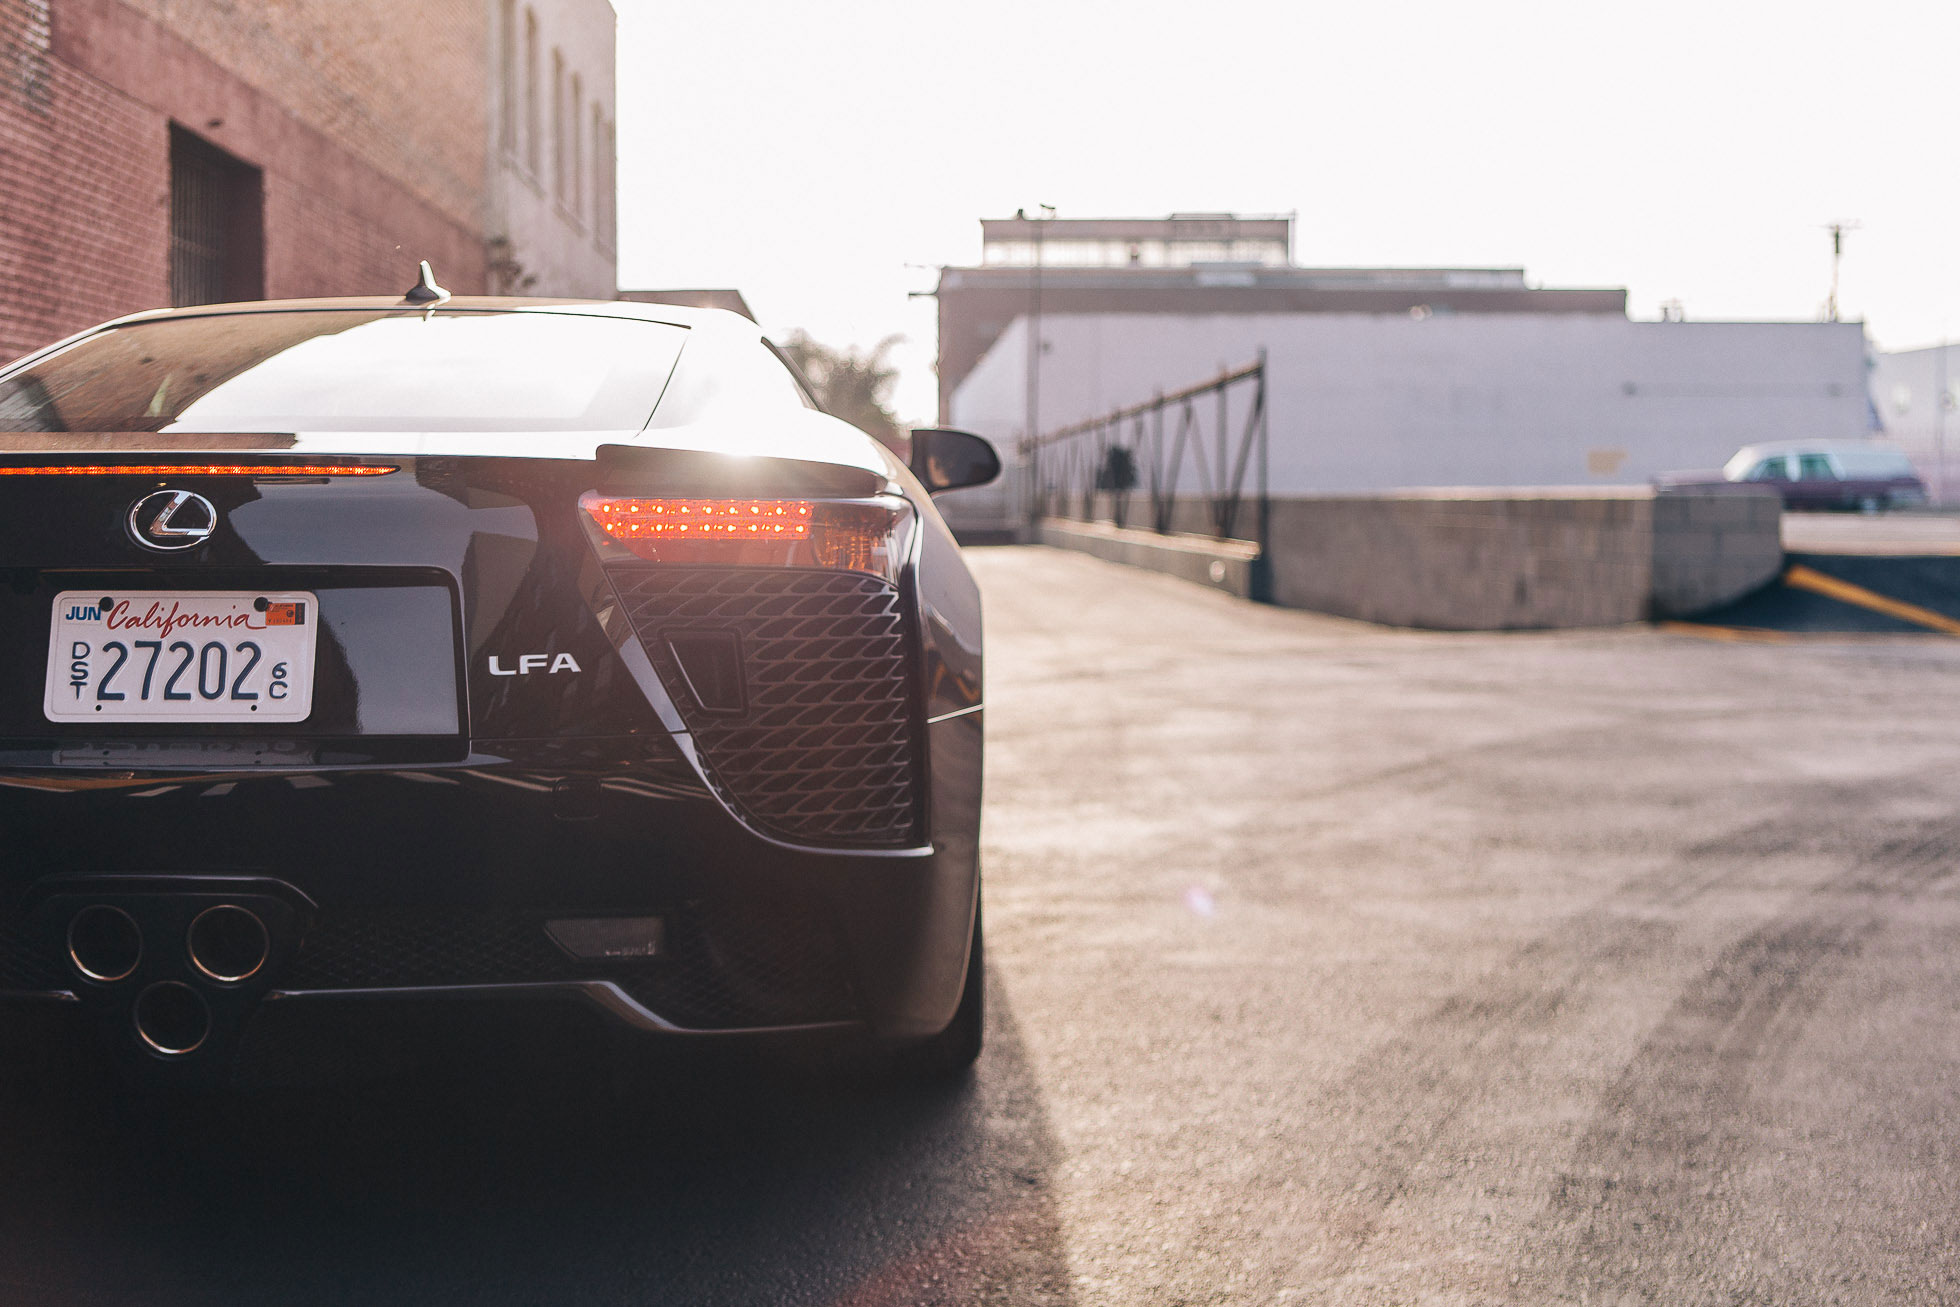 LEXUS LFA IN LA (1) - SMADE MEDIA